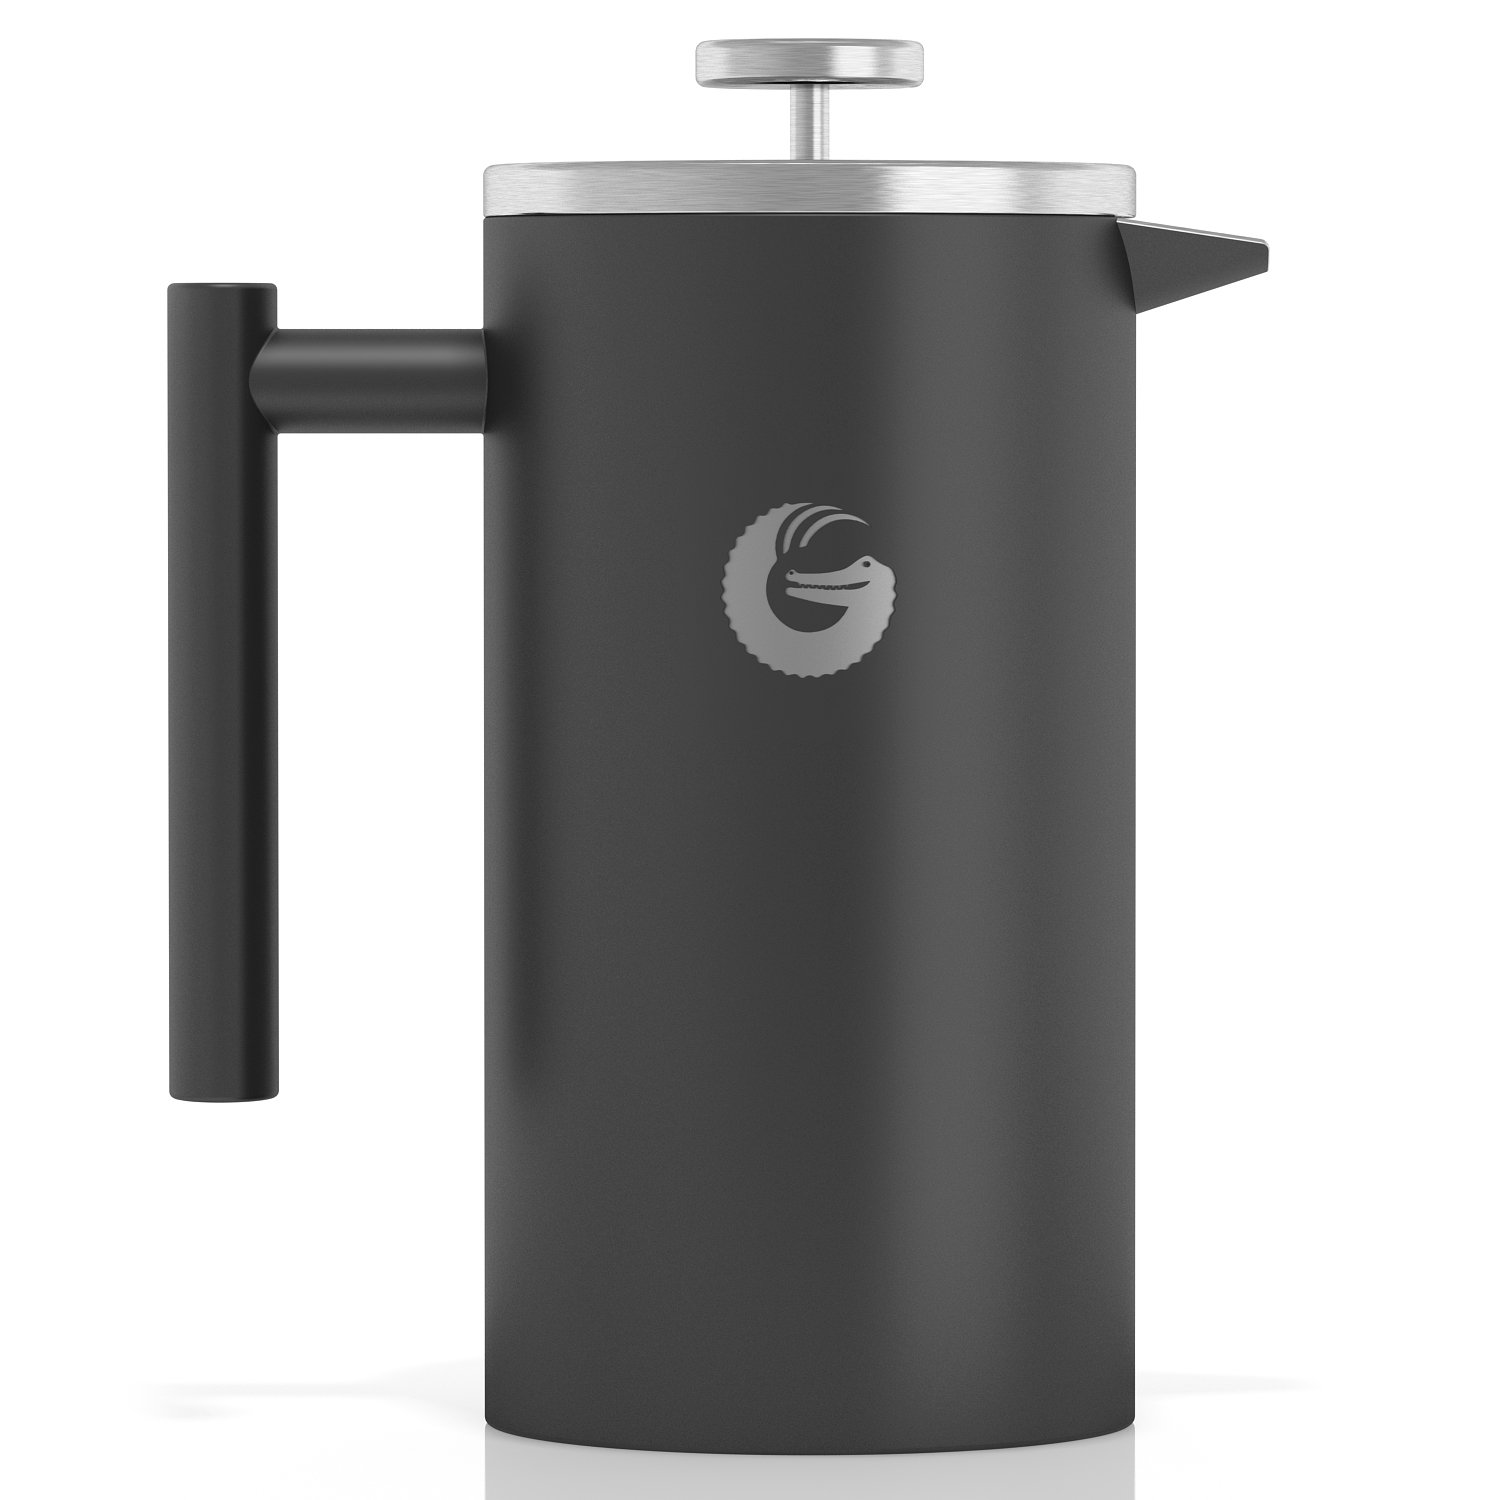 The coffee gator french press